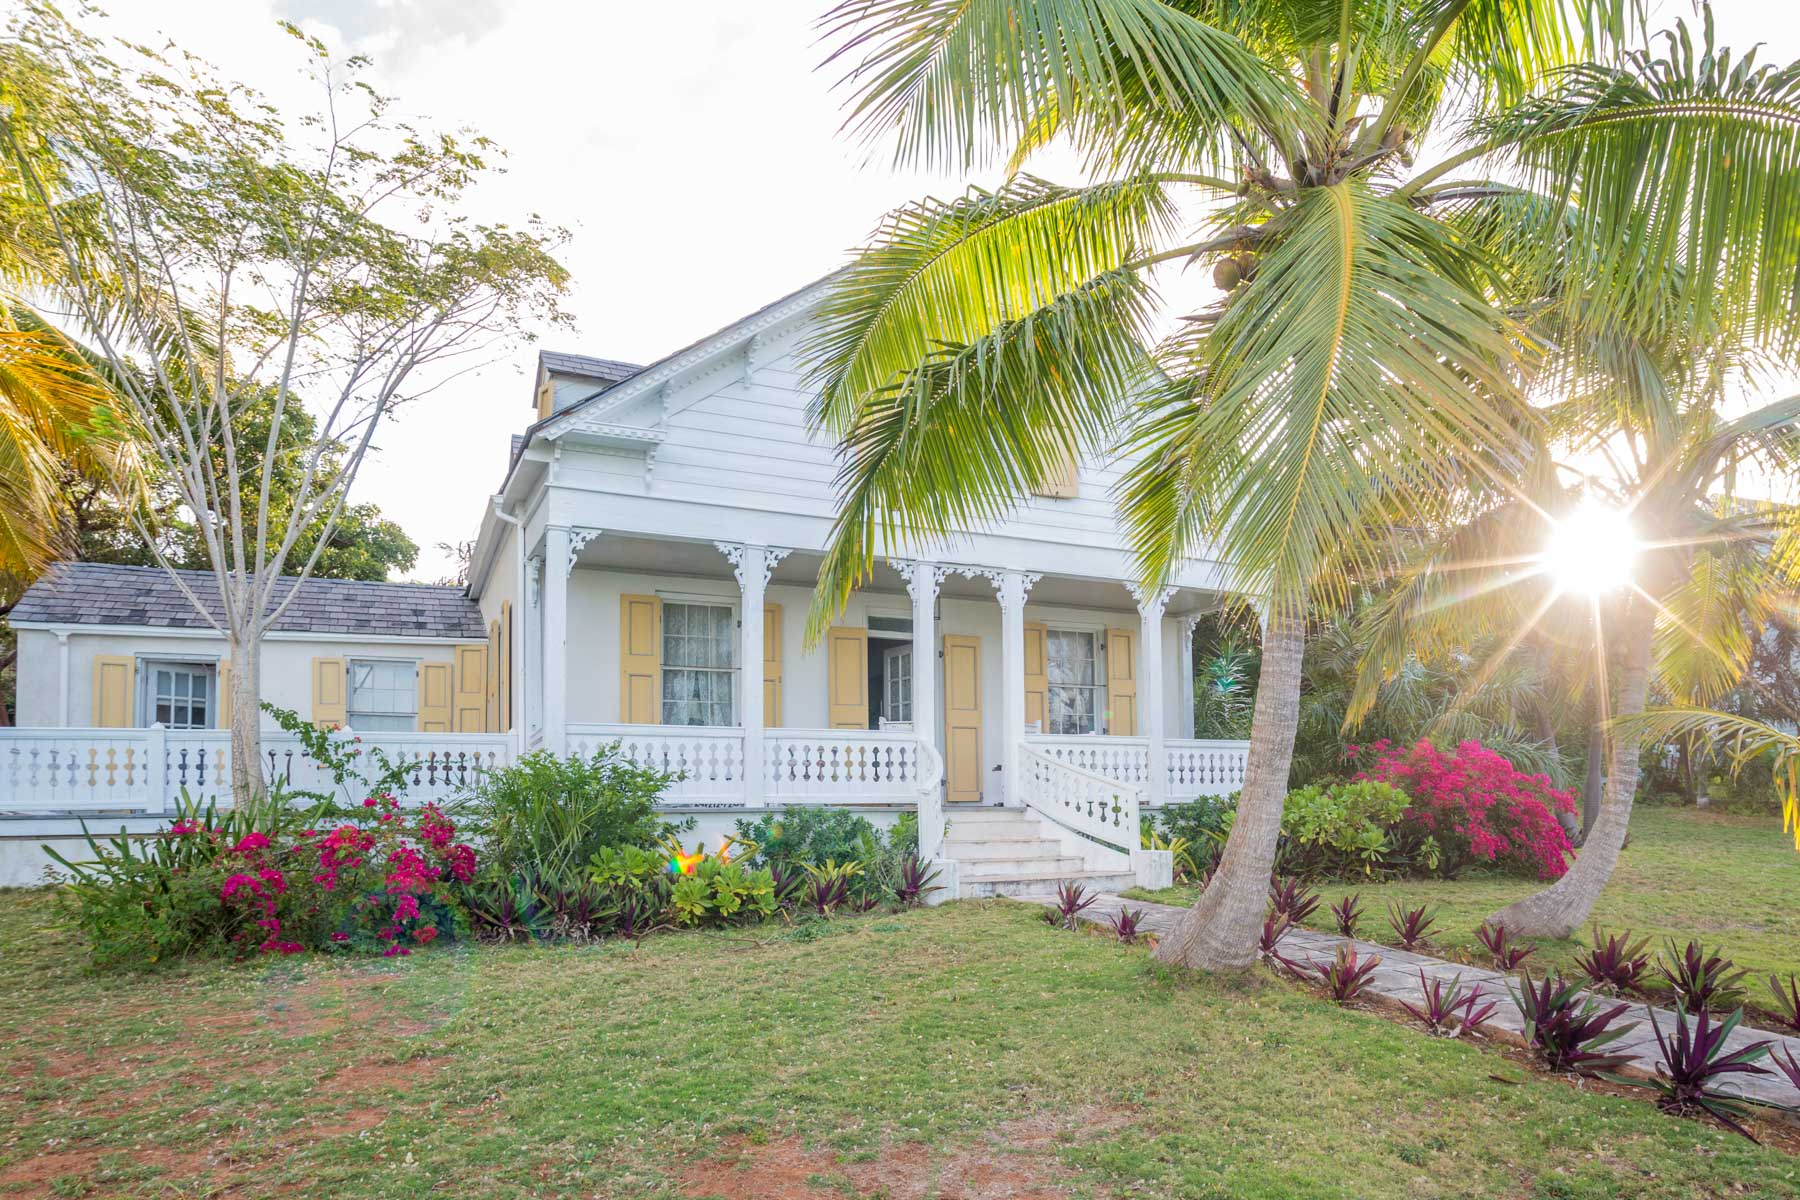 Single Family Home for Sale at A Very Rare and Special Home / MLS32815 Governors Harbour, Eleuthera, Bahamas